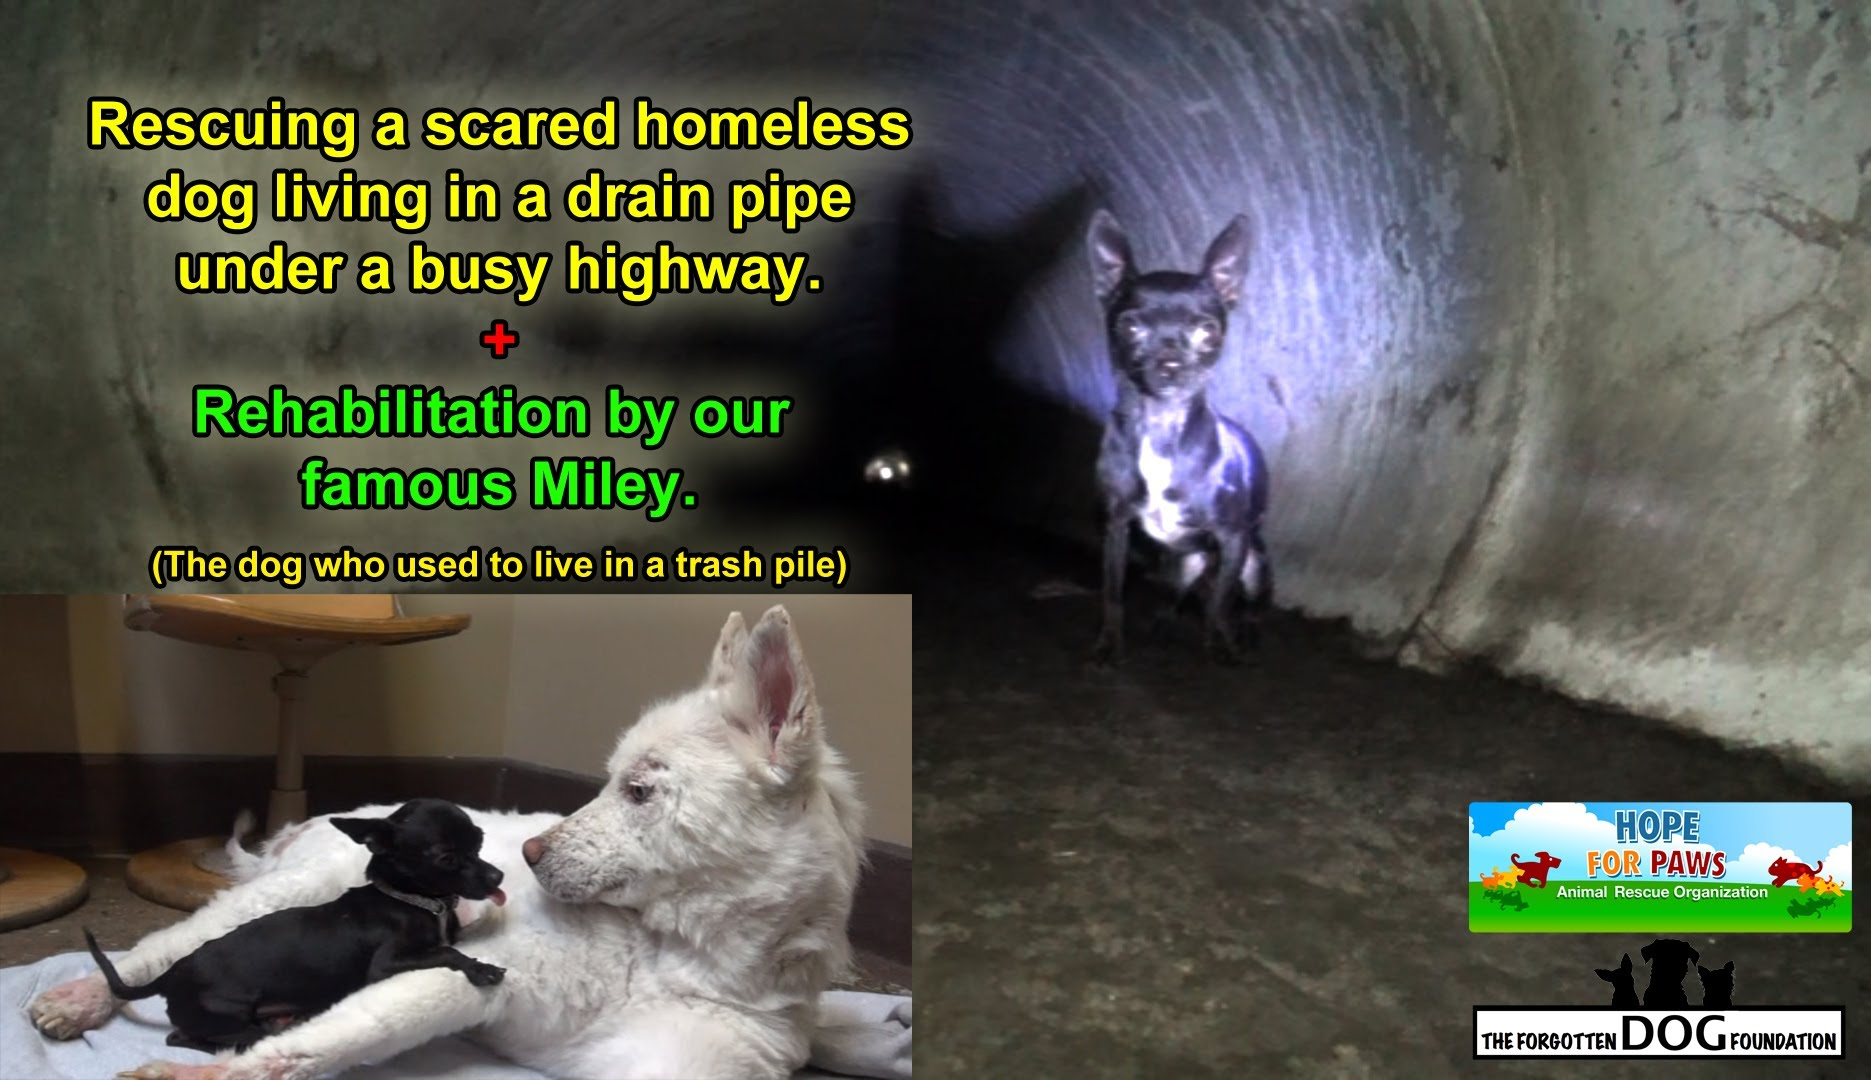 Rescuing a scared homeless dog living under a busy highway.